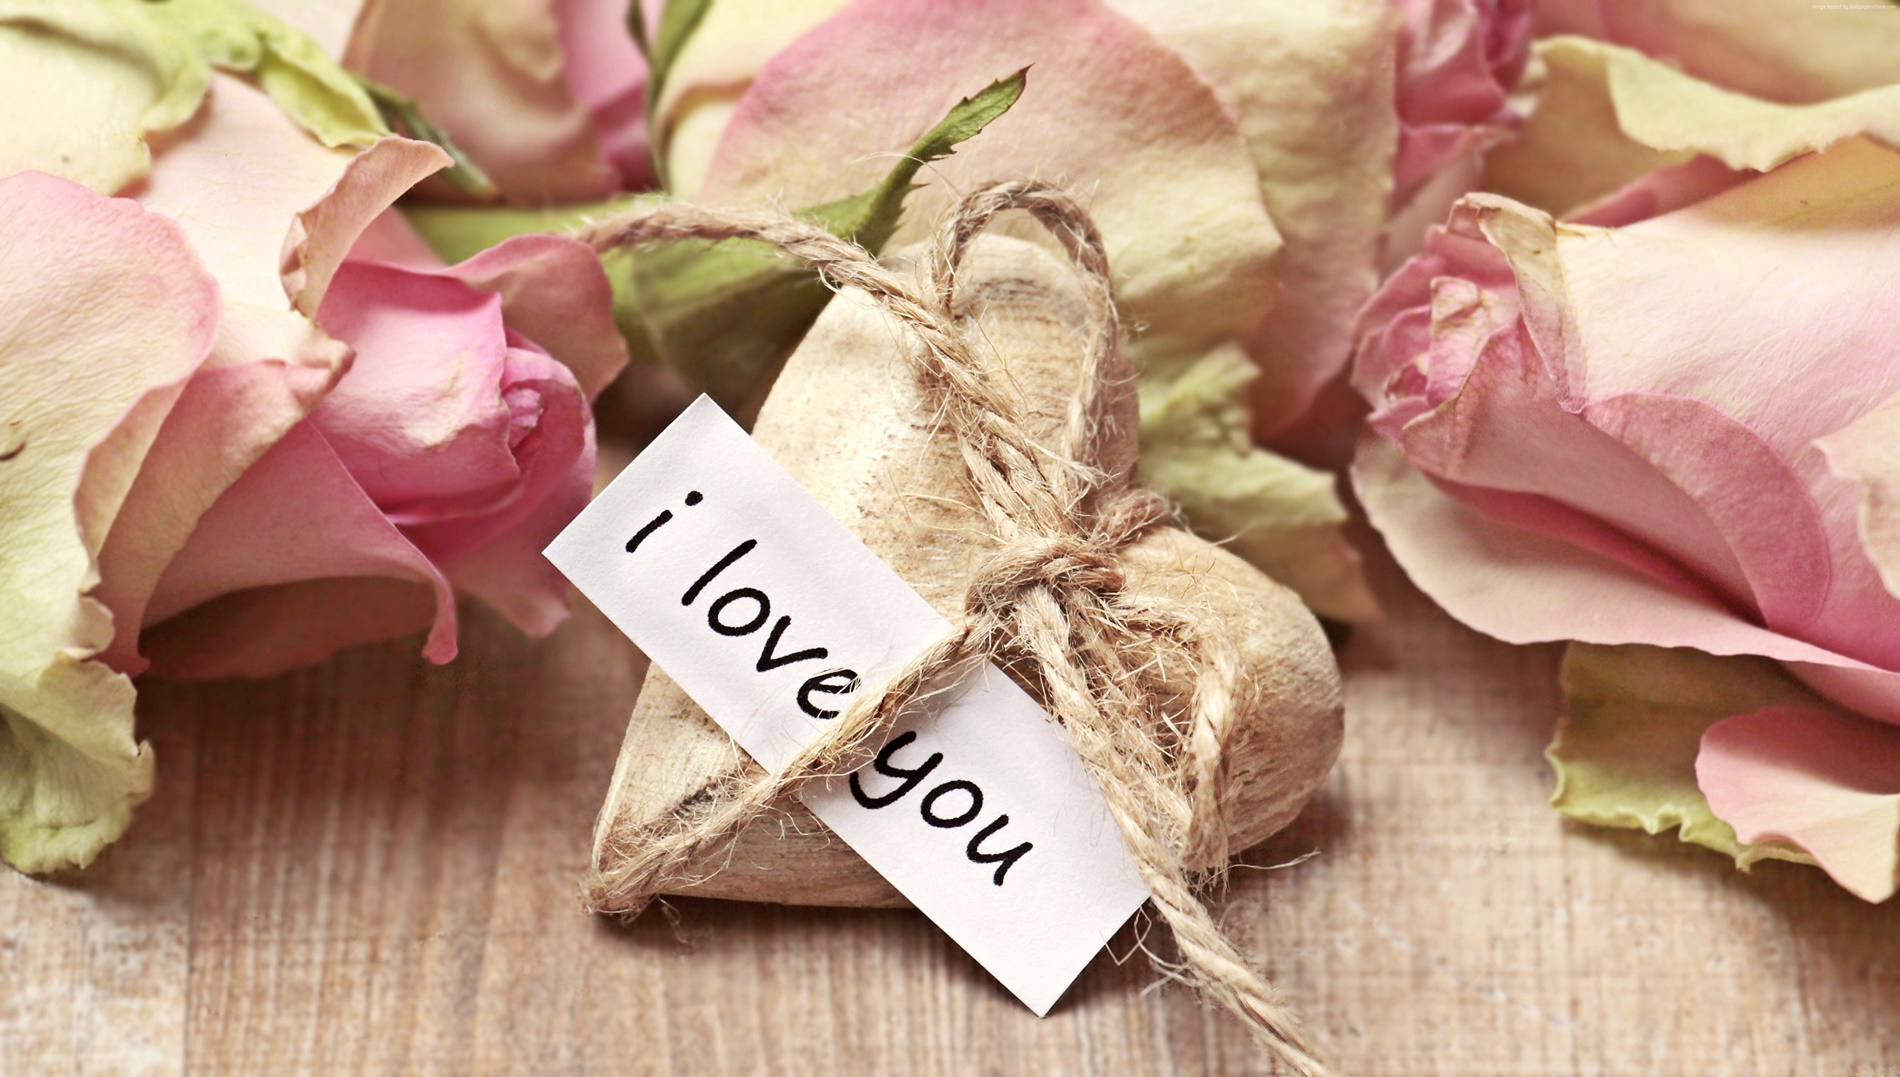 I Love You Wallpapers And Background Images in 4k Full HD